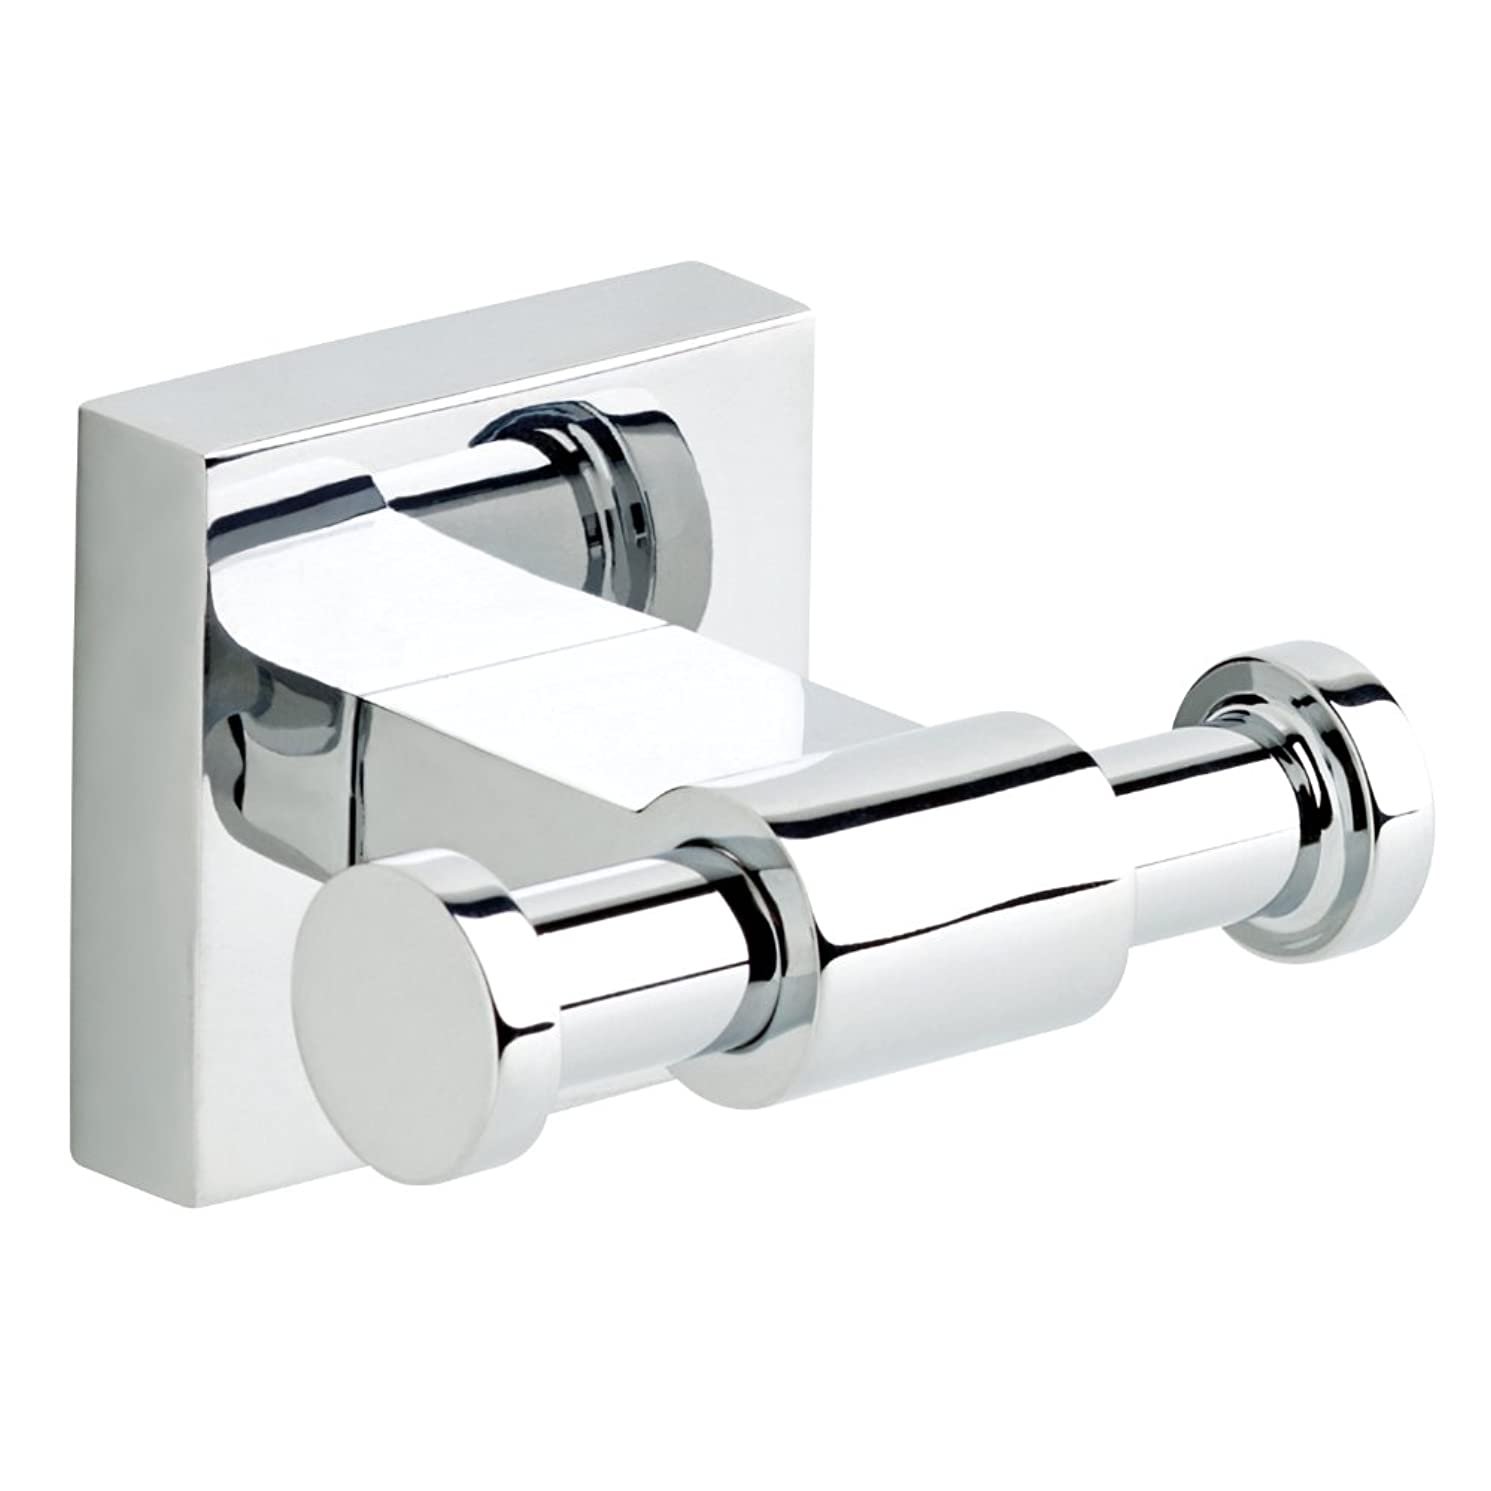 Franklin Brass MAX35-PC Maxted Robe Hook, Polished Chrome